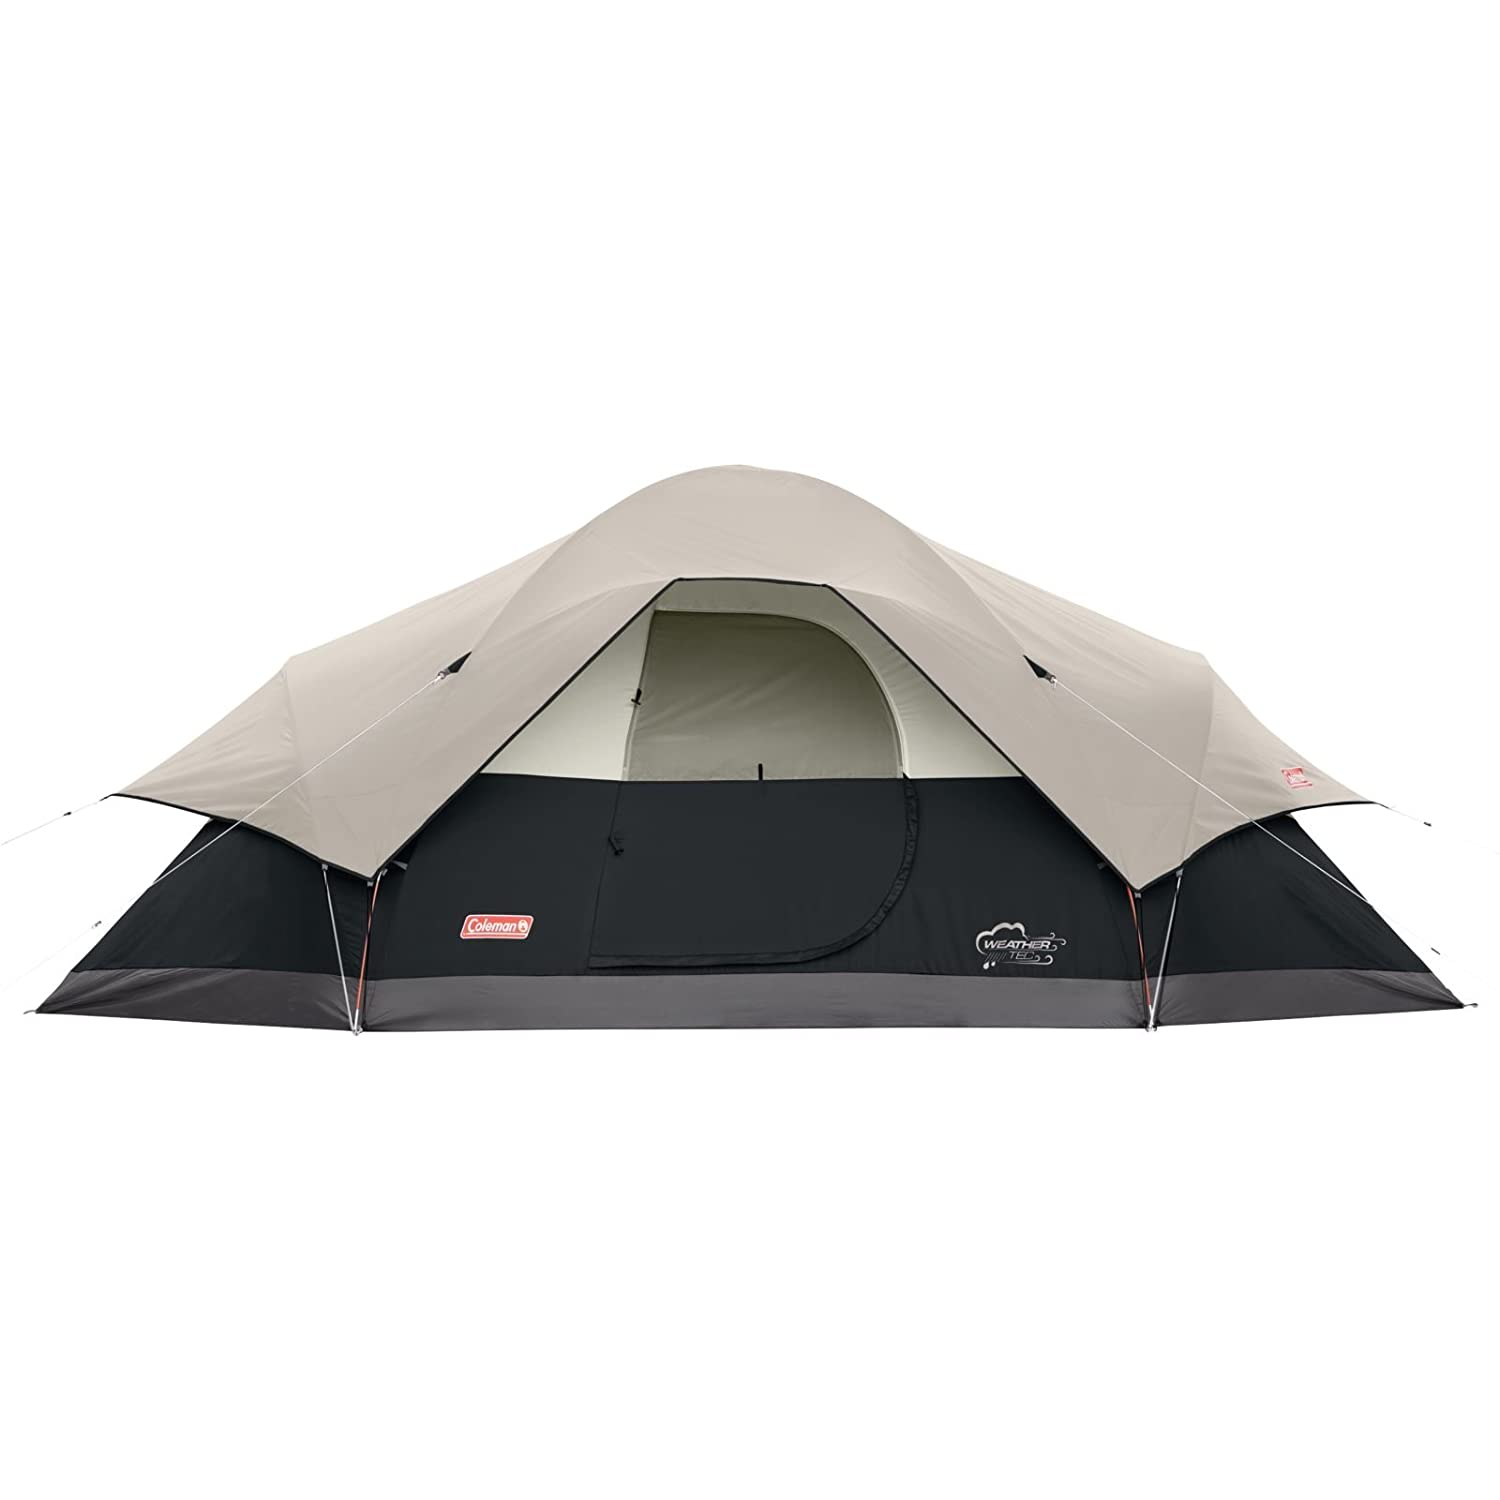 Amazon.com  Coleman 8-Person Red Canyon Tent Black  Sports u0026 Outdoors  sc 1 st  Amazon.com & Amazon.com : Coleman 8-Person Red Canyon Tent Black : Sports ...